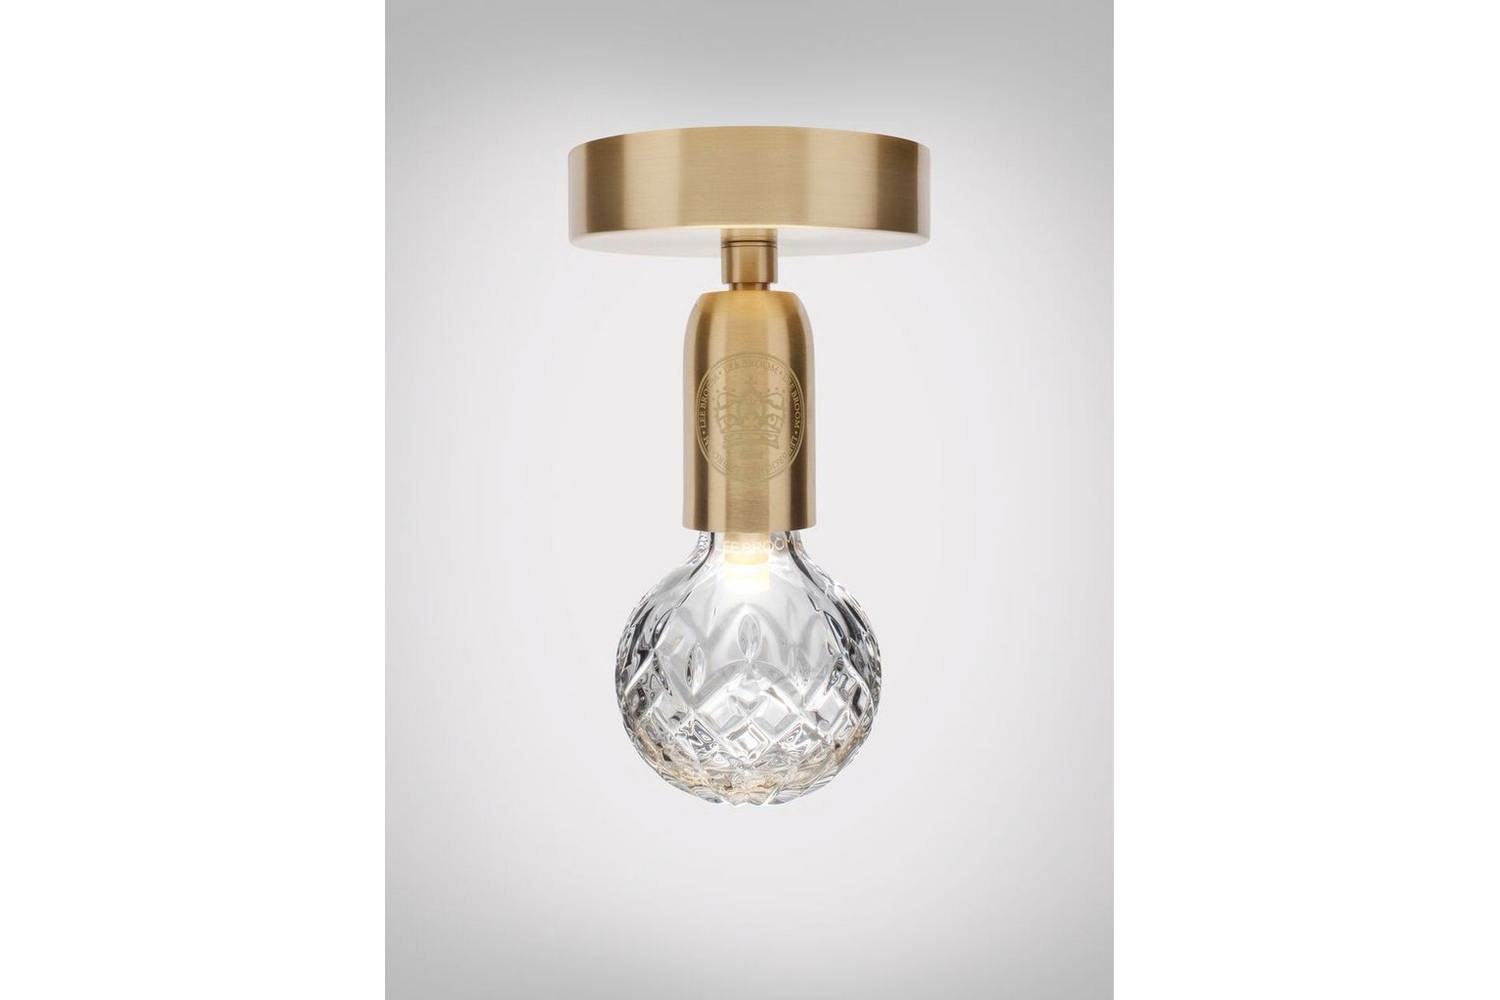 Clear Crystal Bulb Ceiling Lamp - Brushed Brass by Lee Broom